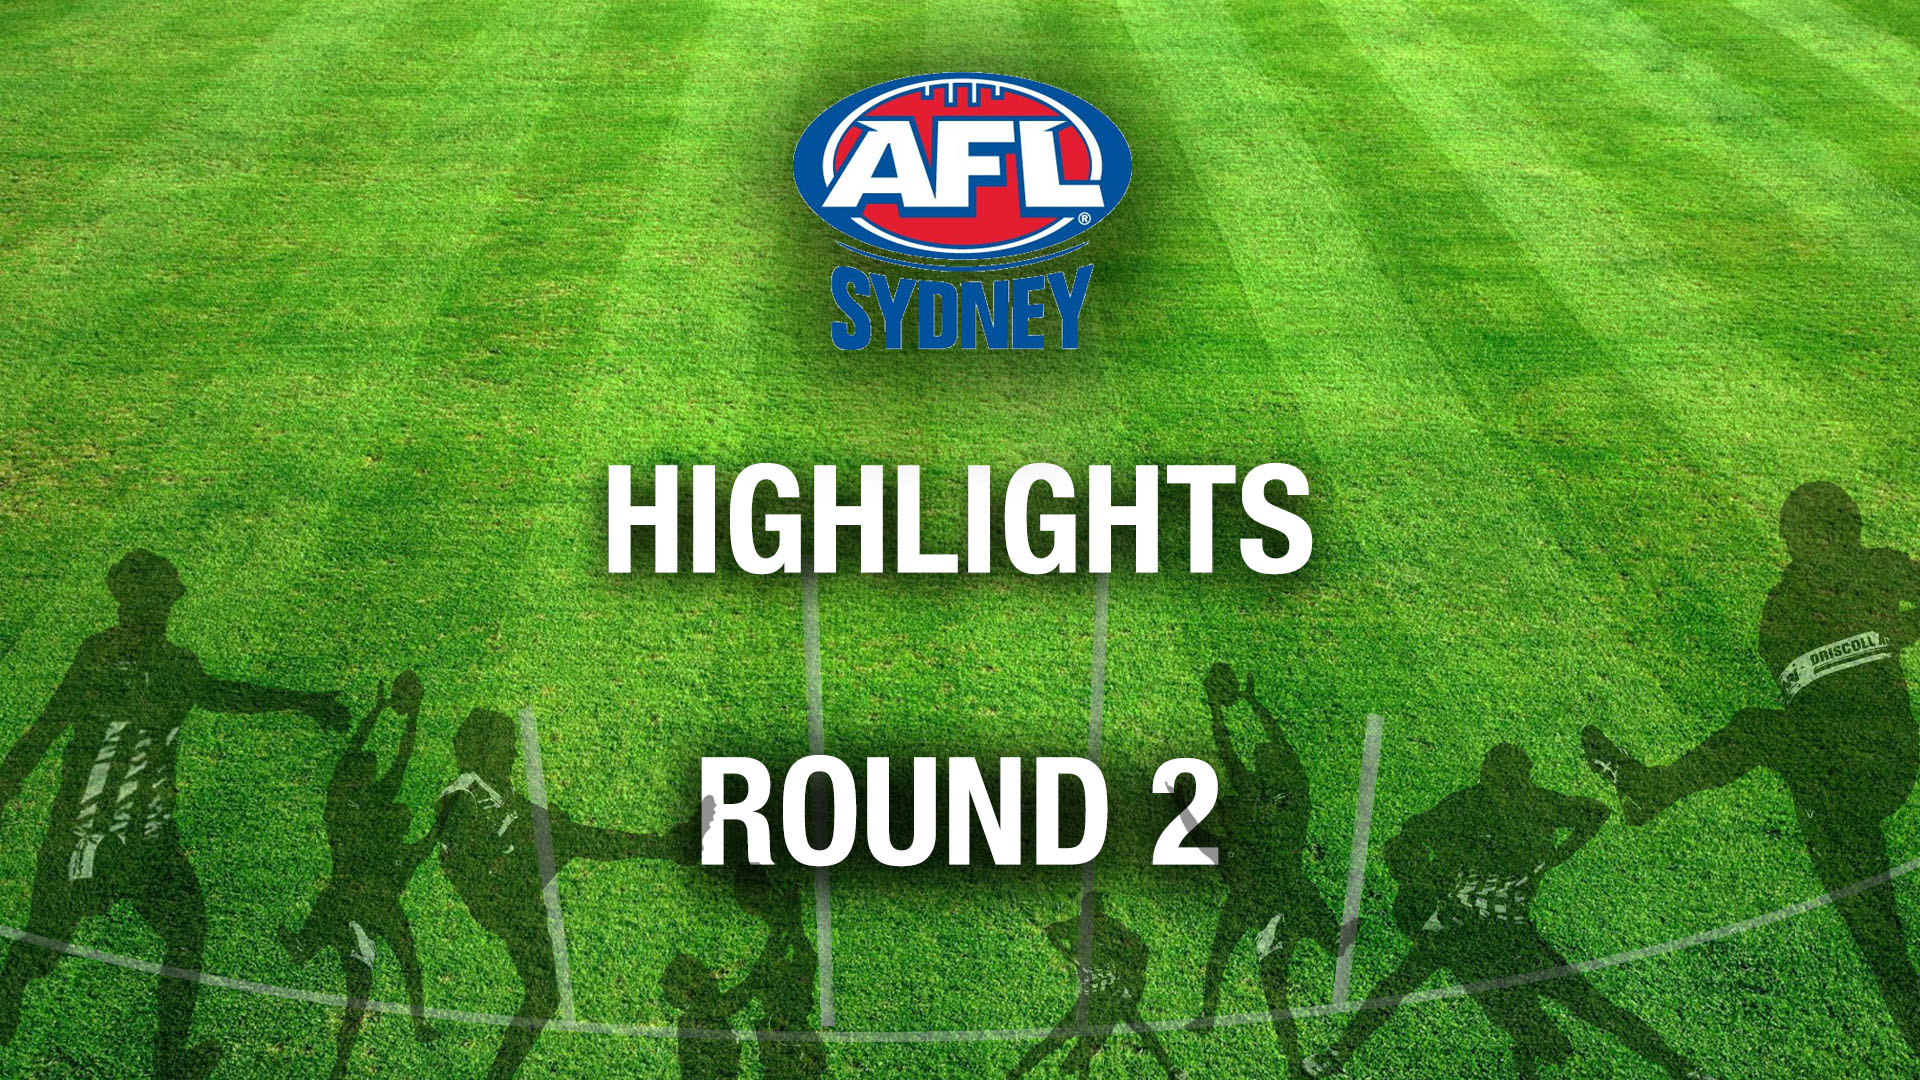 AFL SYDNEY ROUND 2 HIGHLIGHTS